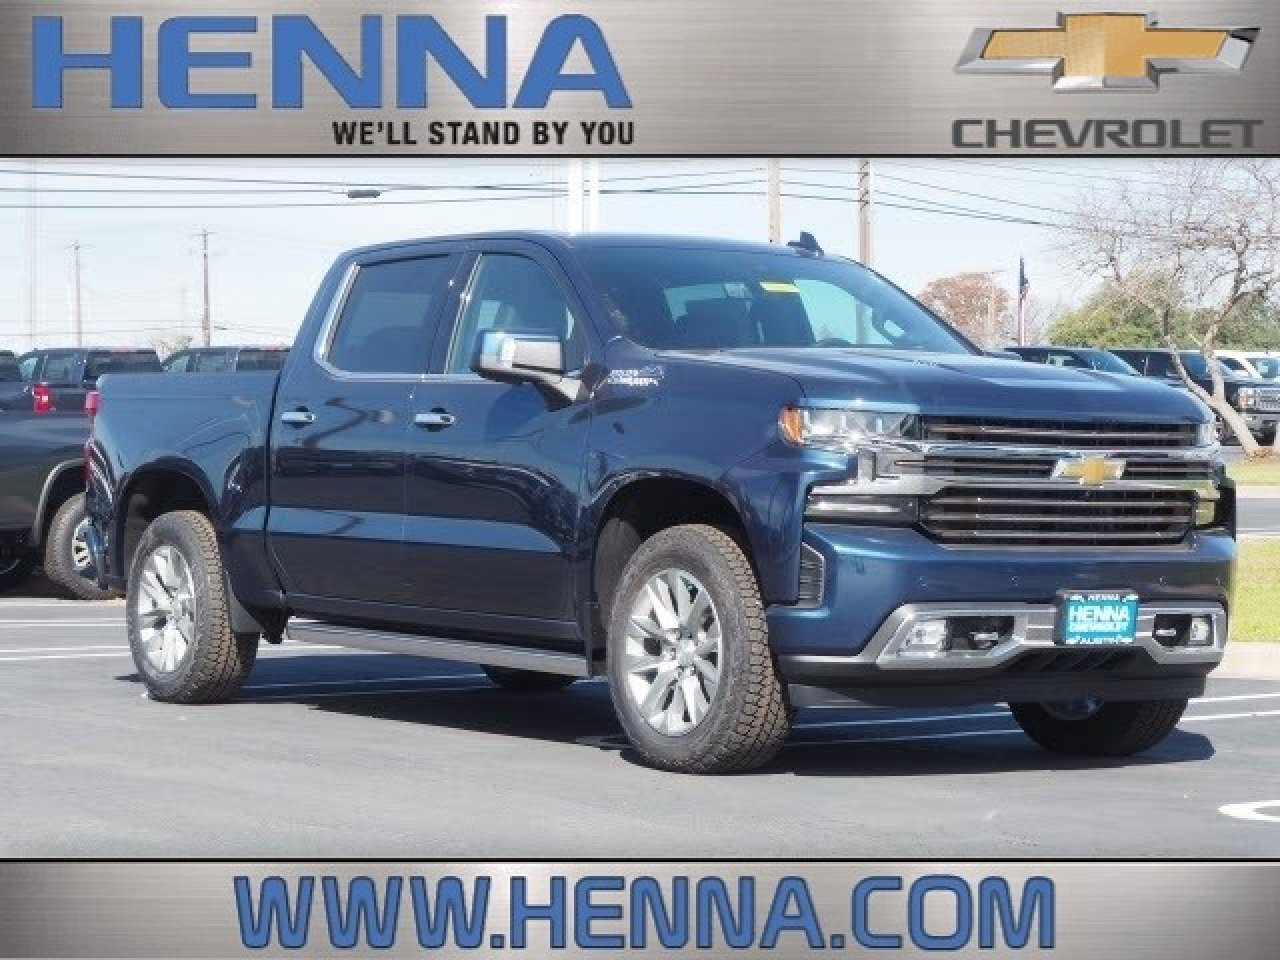 2020 Chevrolet Silverado 1500 High Country 1Gcuyhel2Lz189150 The 2021 Chevrolet Silverado Front Bumper, Floor Mats, Front Grill